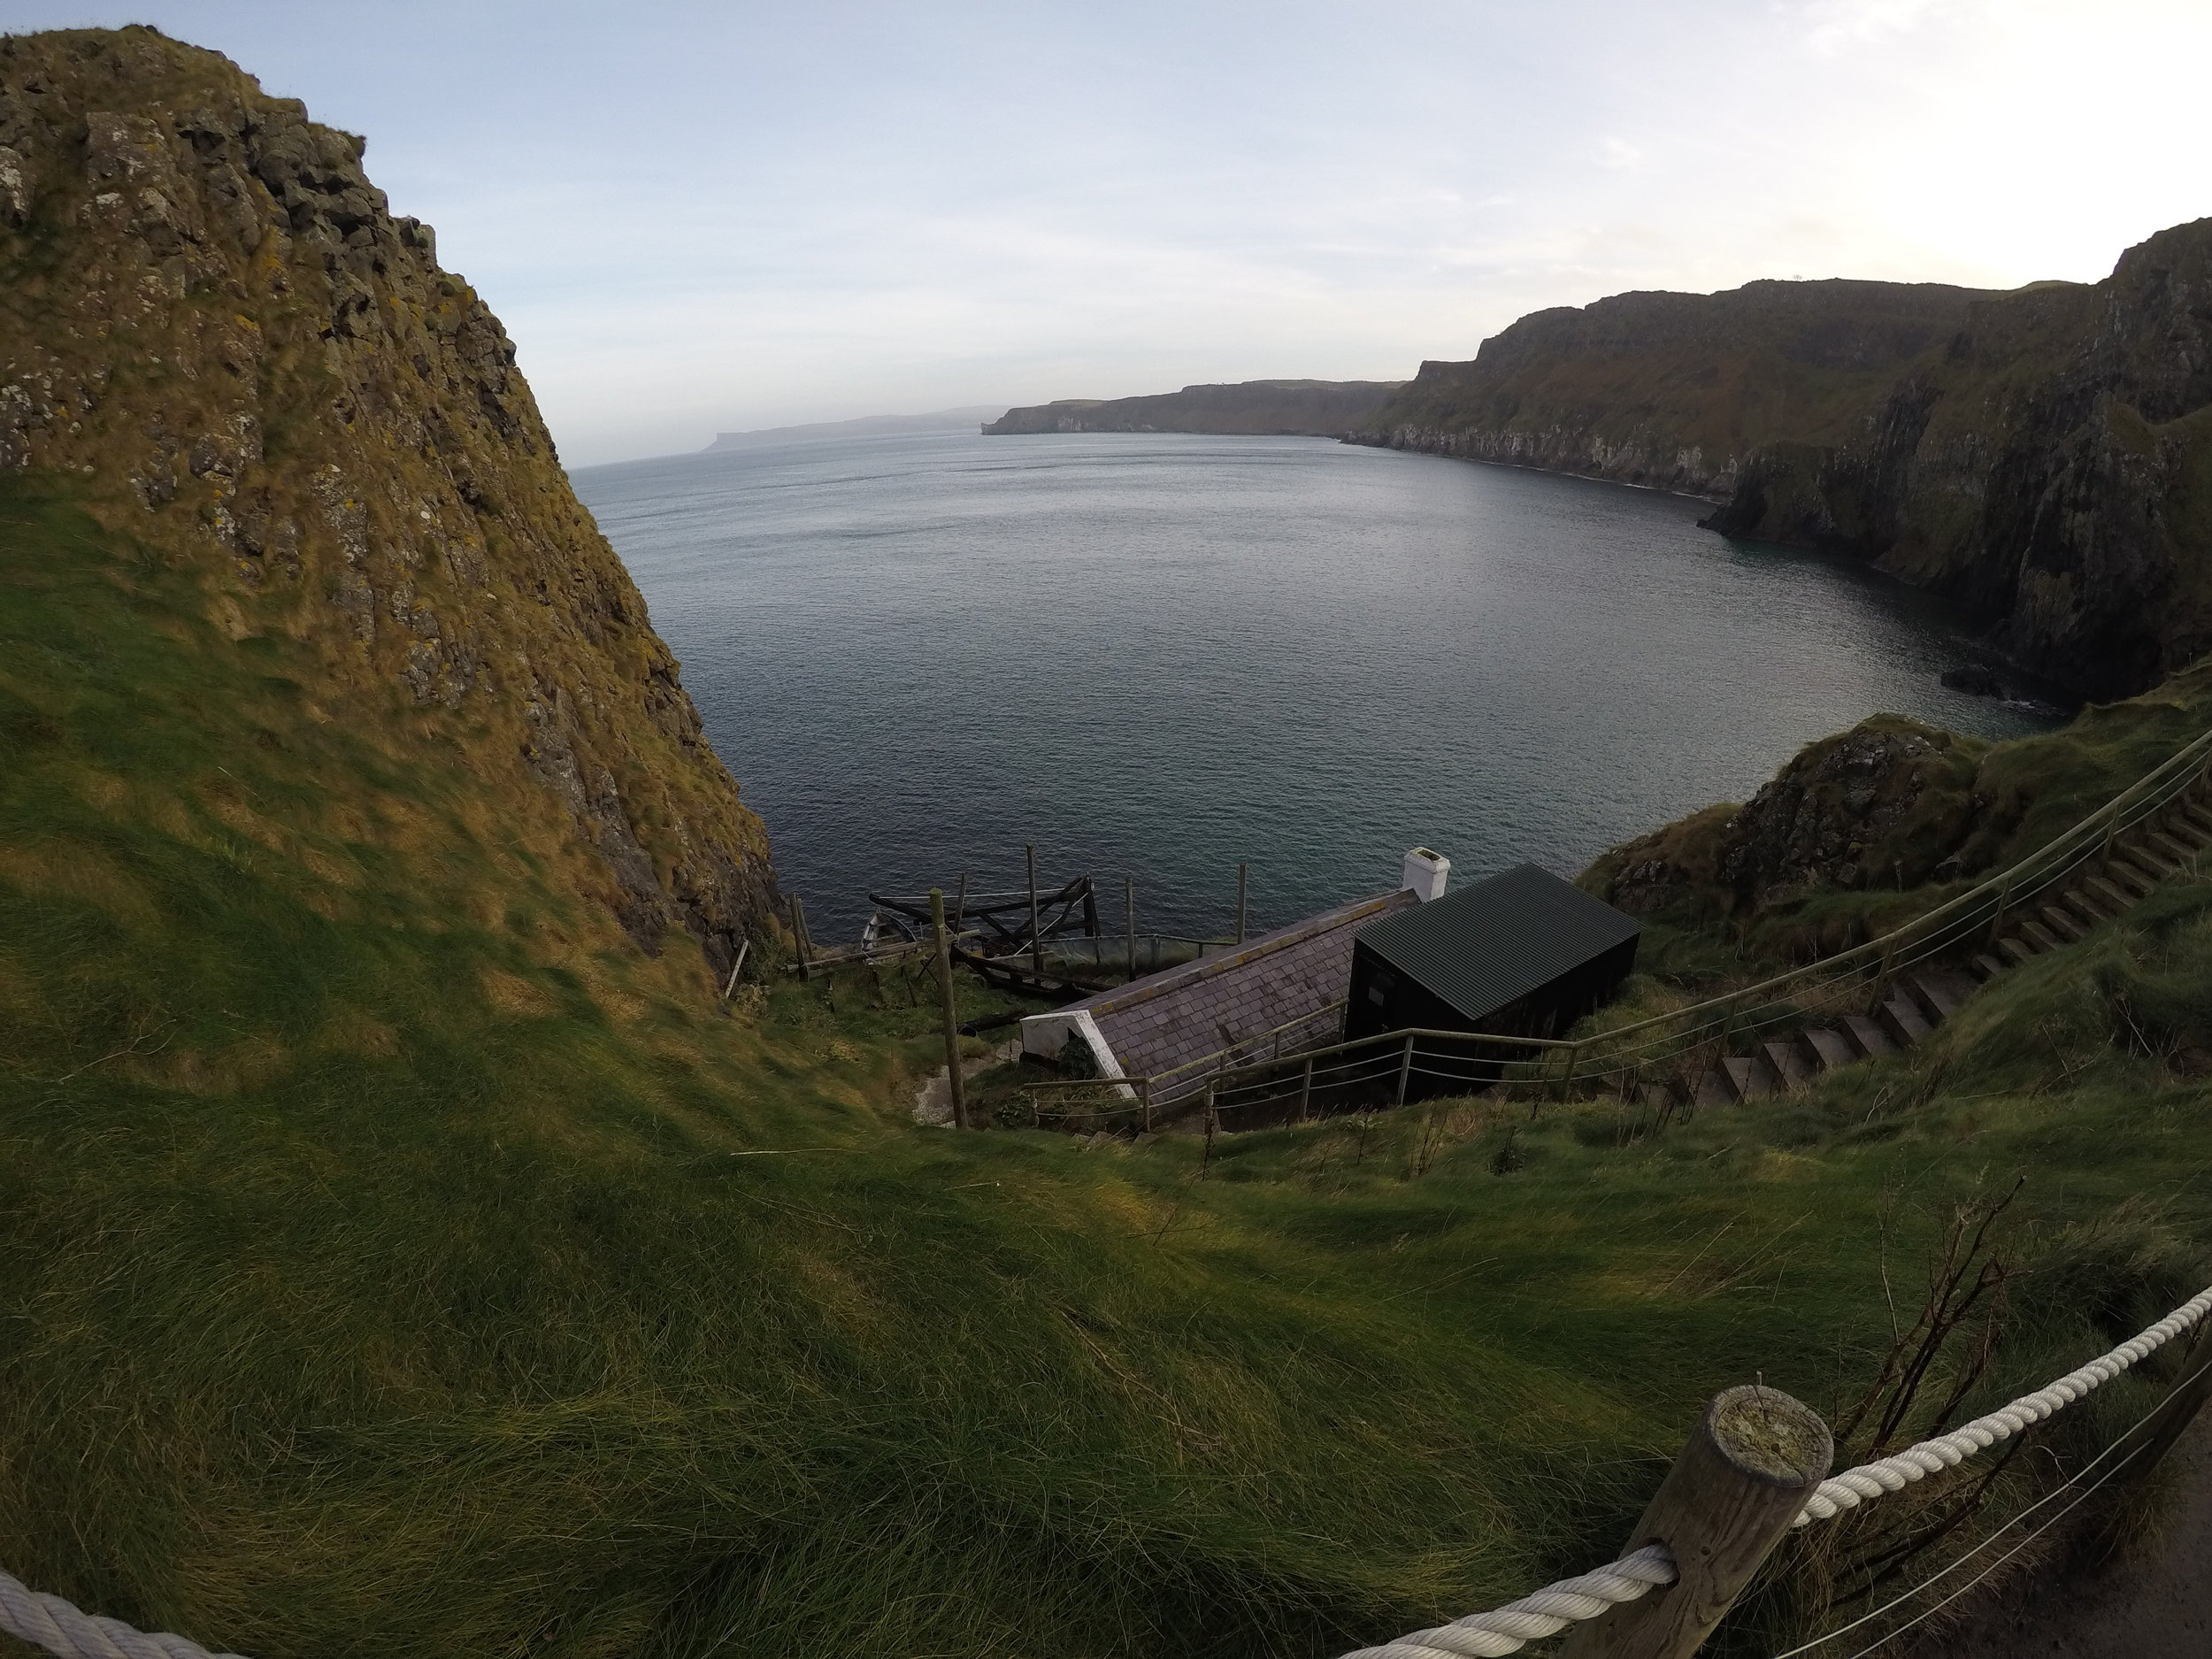 The bridge leads to Carrick-A-Rede Island, which has the remains of the fishery where the bridge once led.